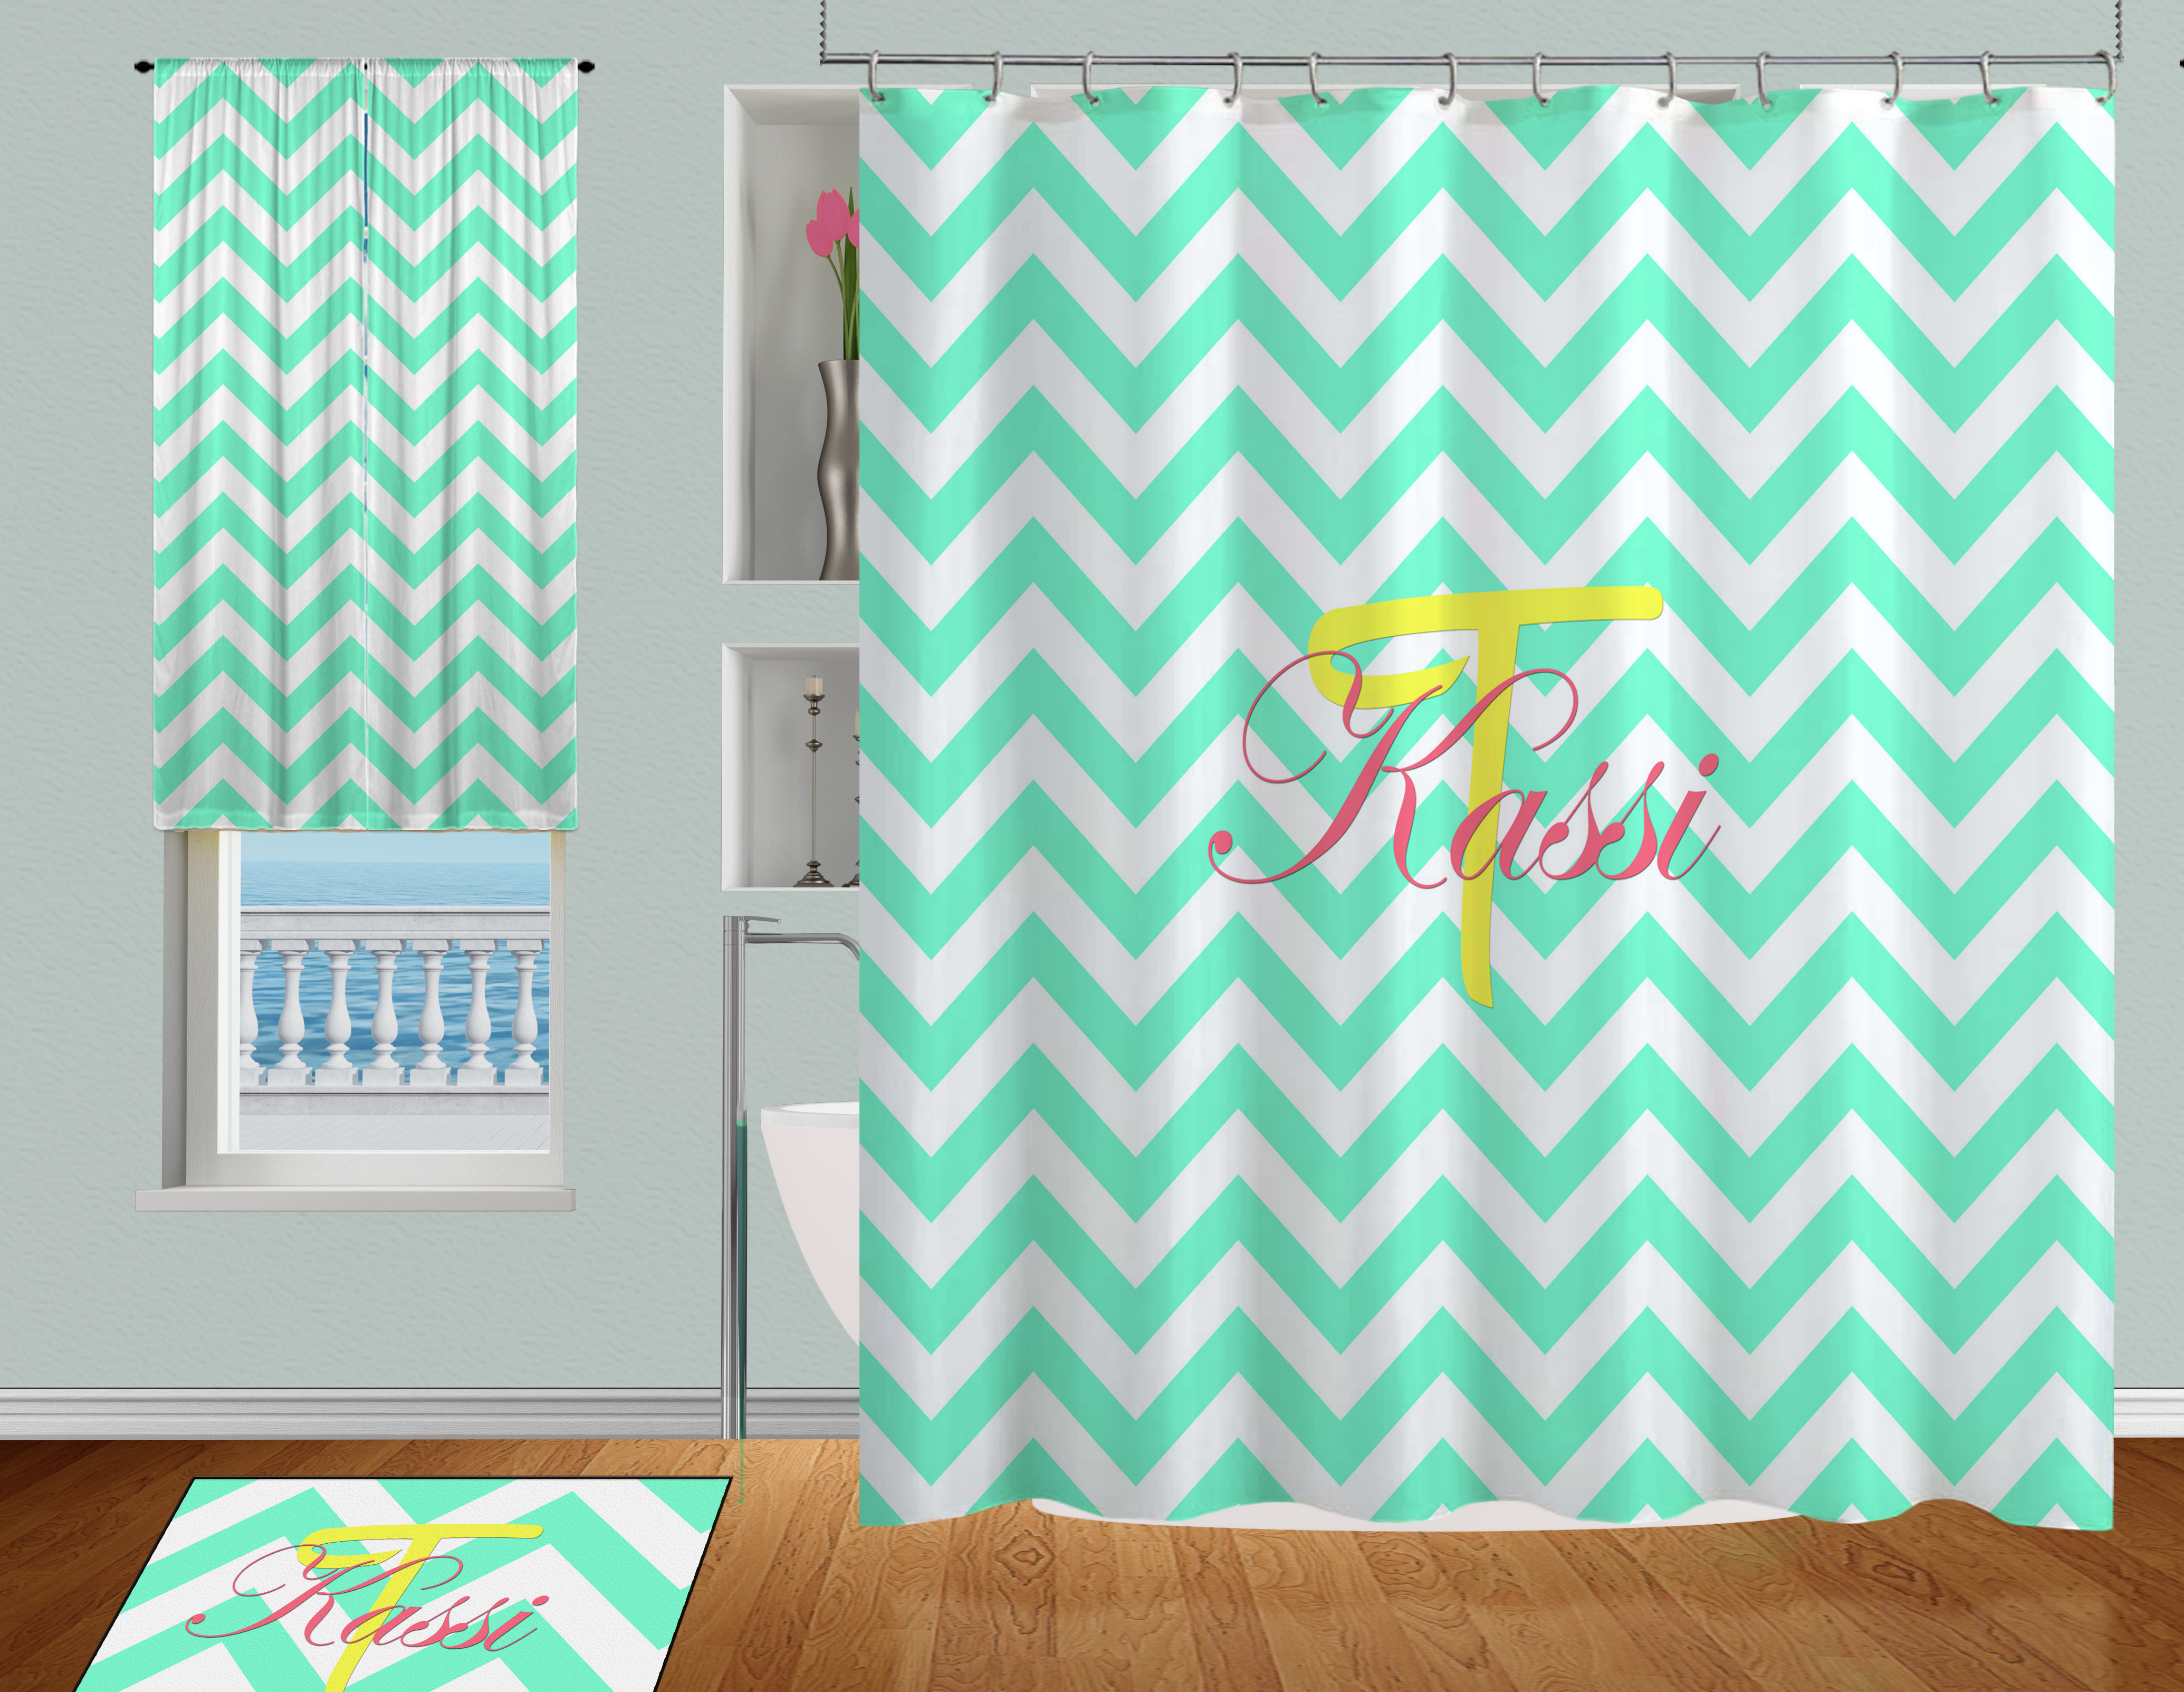 college aqua or teal colored shower curtain personalized in coral and yellow 93 eloquent innovations